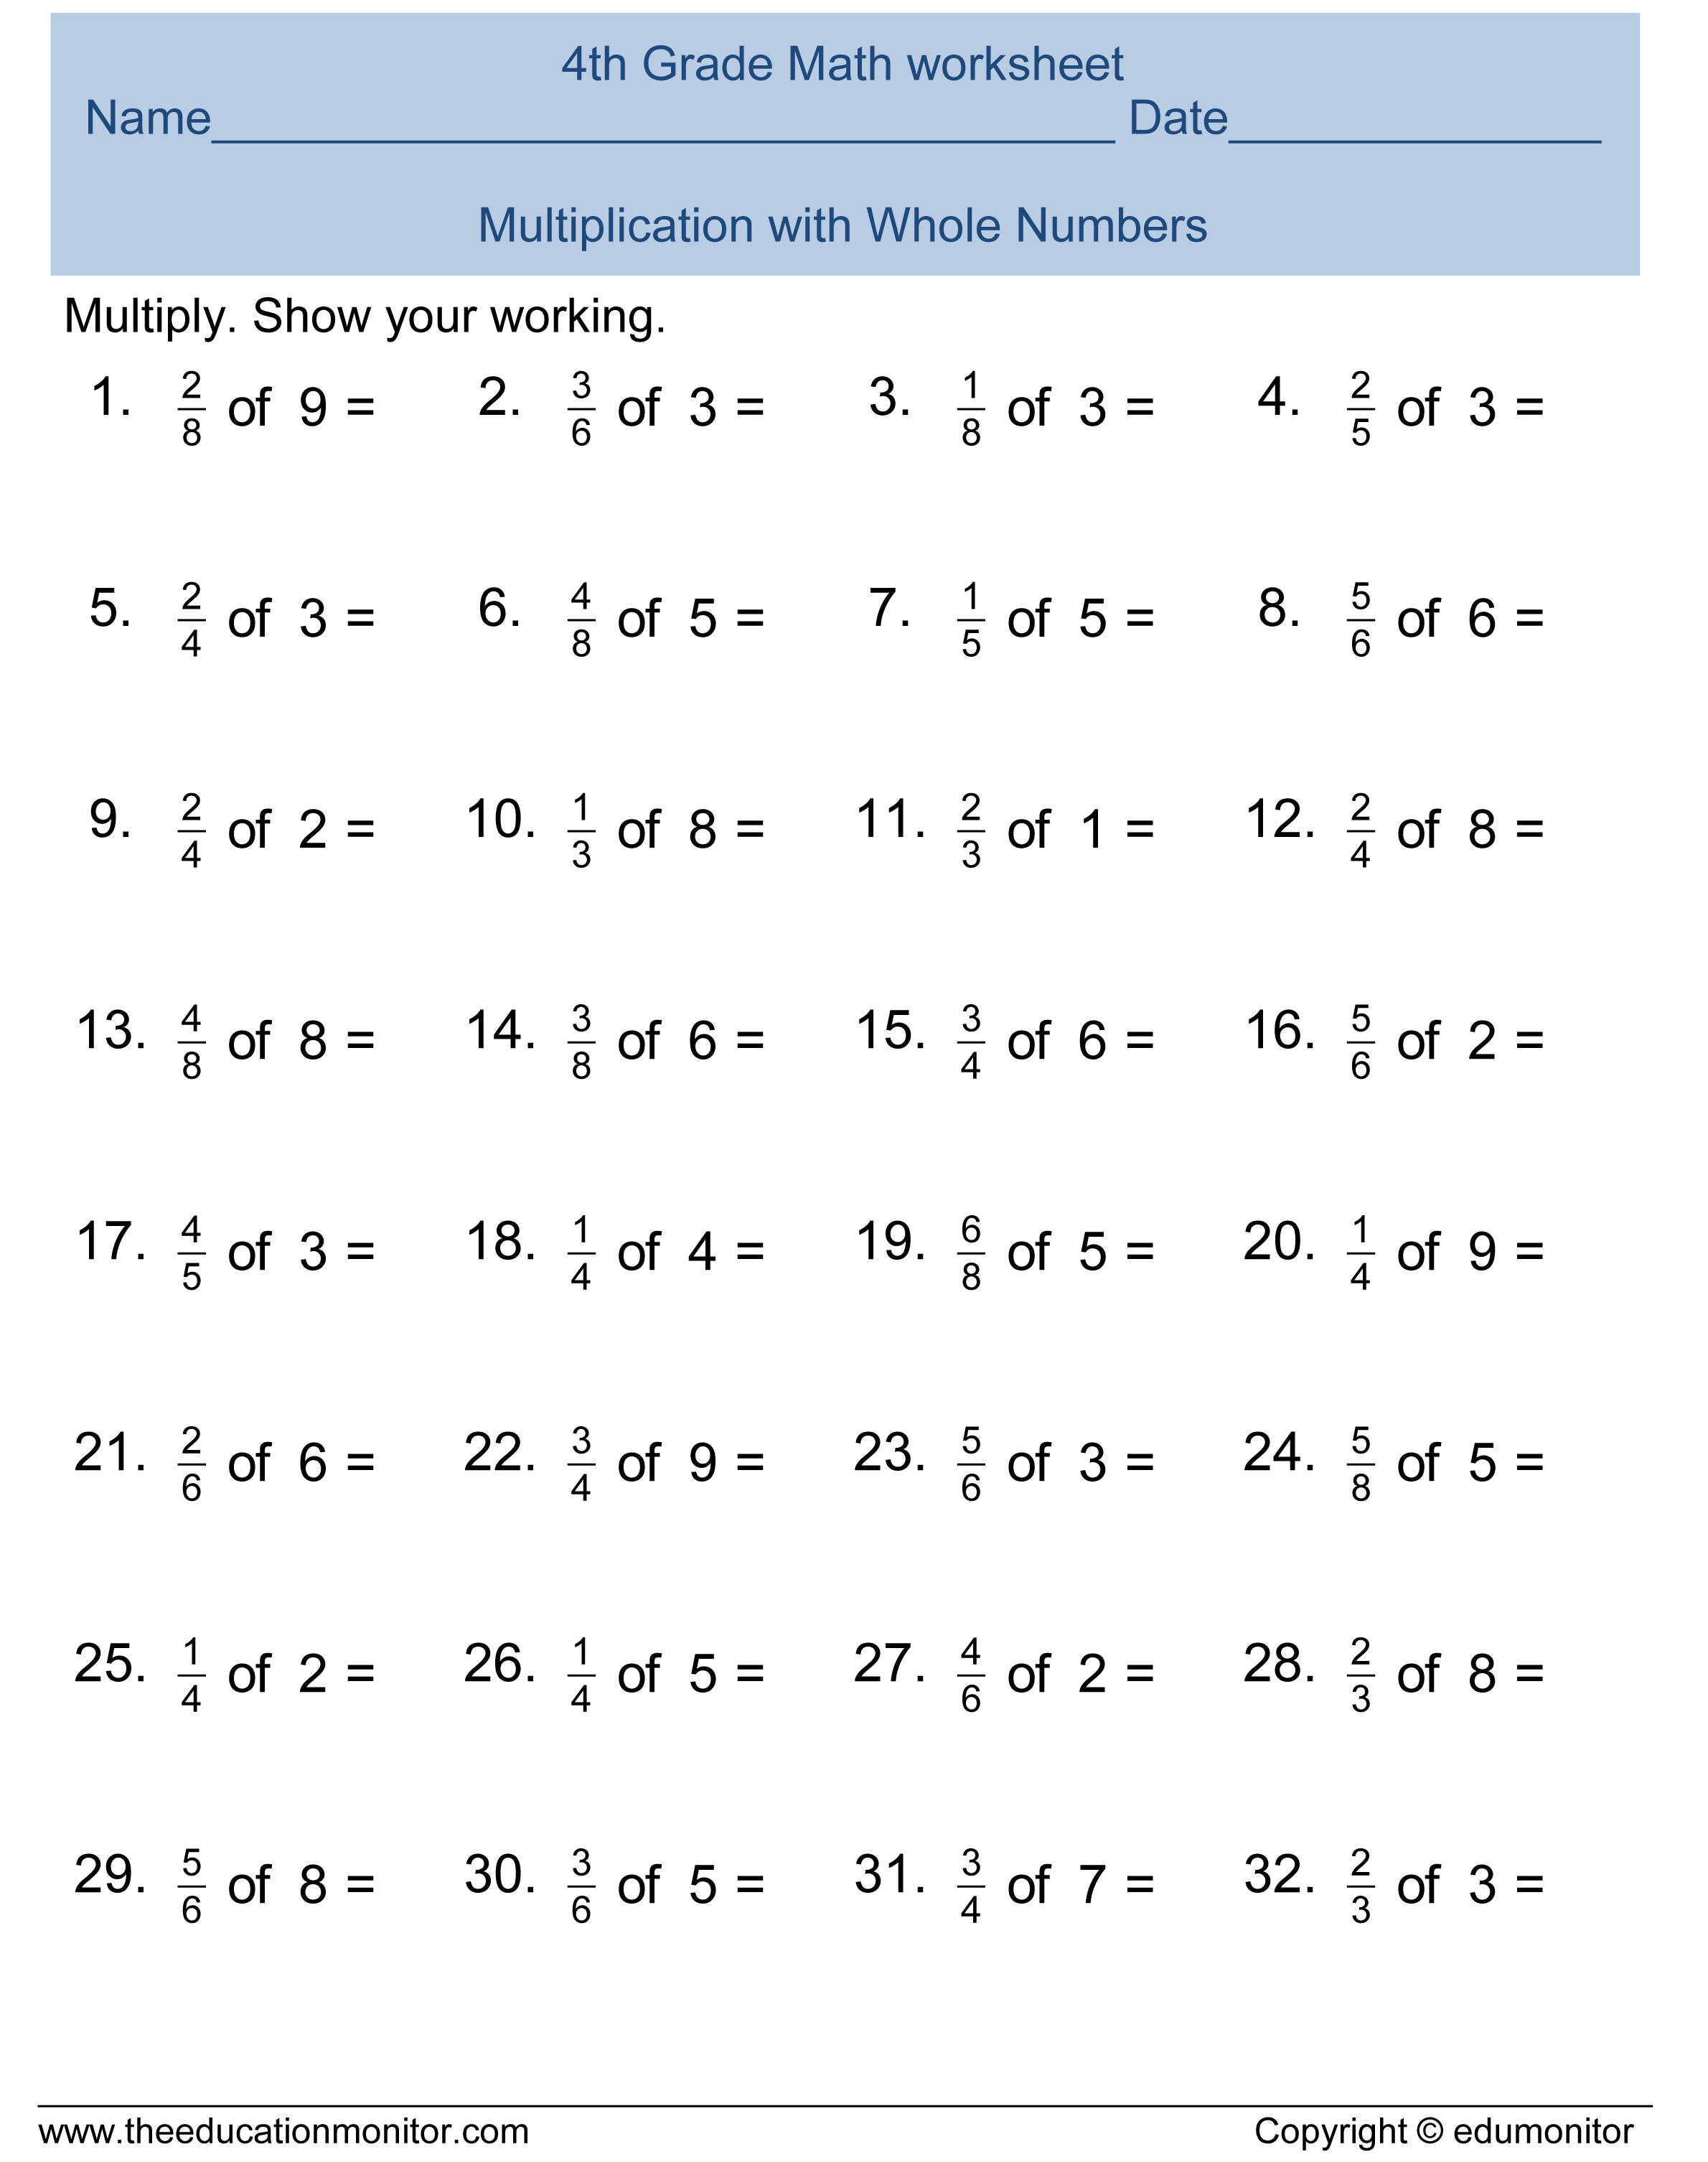 Free Printable Worksheets for 4th Grade – 4th Grade Fractions Worksheet